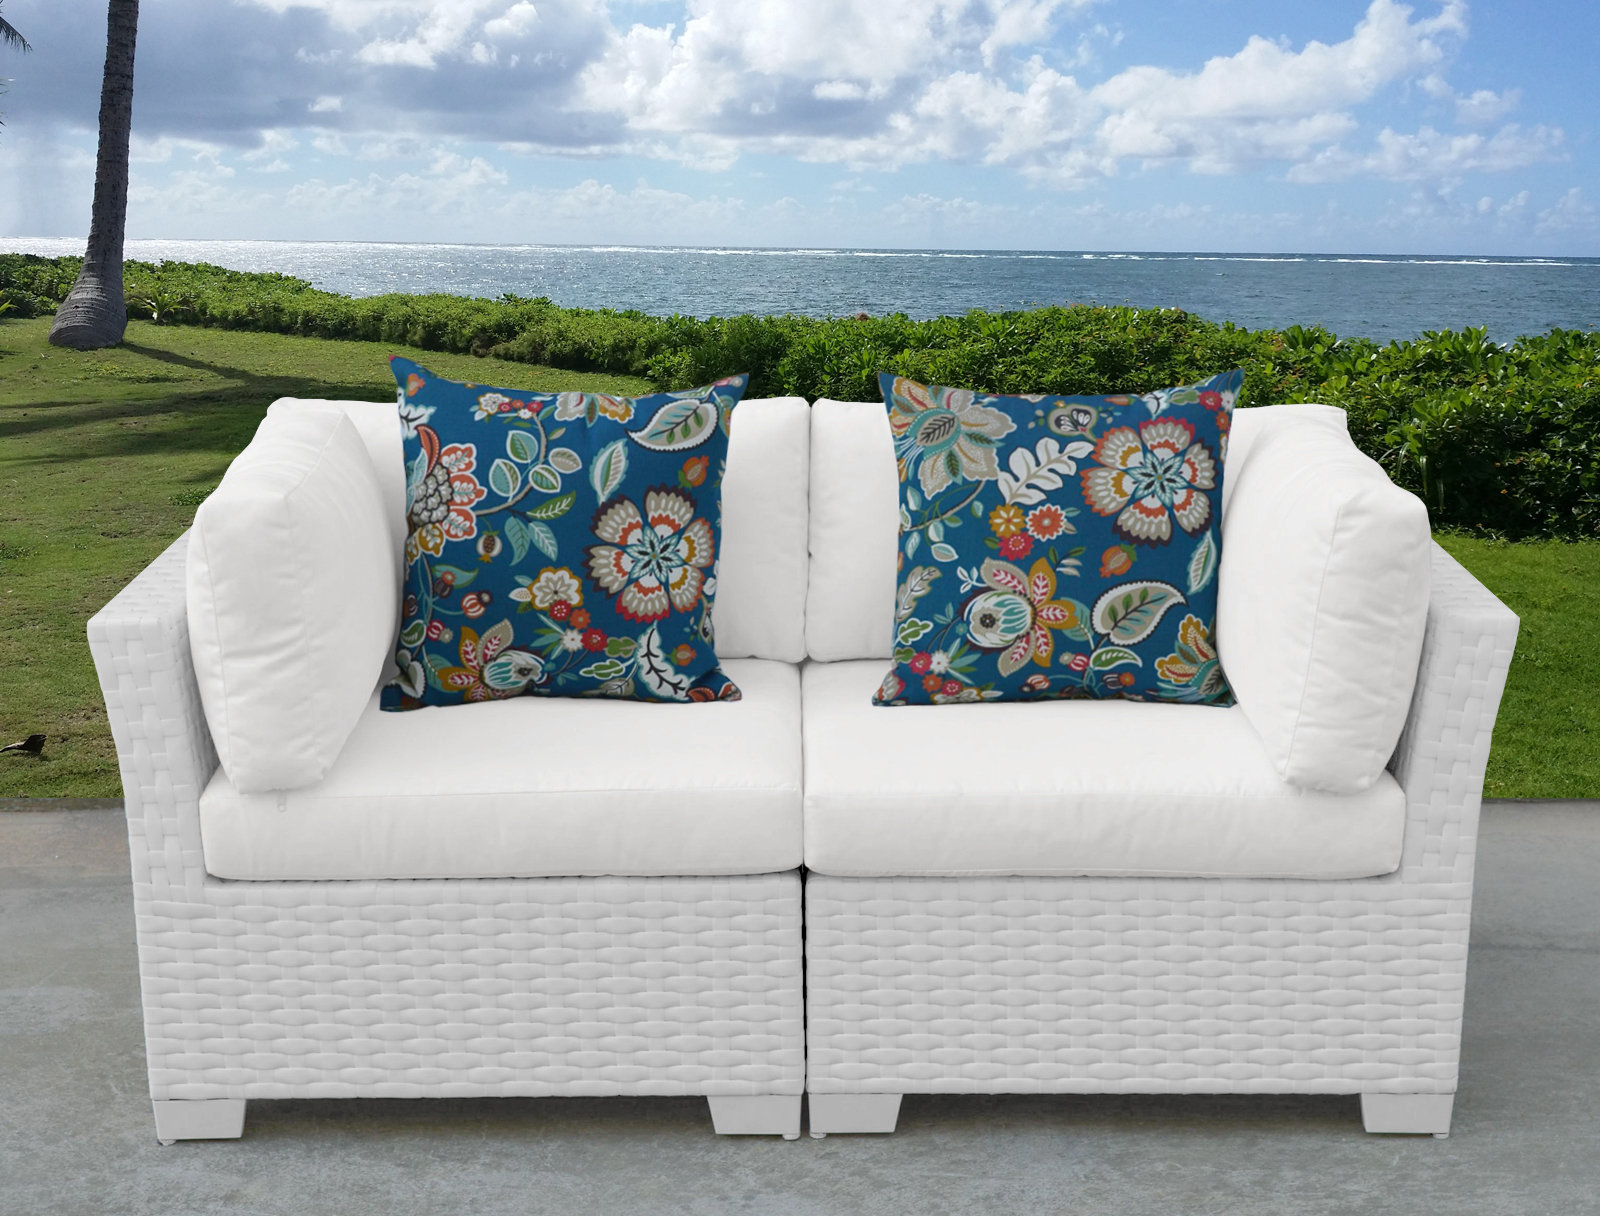 Most Recently Released Monaco Outdoor Loveseat With Cushions Within Baltic Loveseats With Cushions (View 25 of 25)